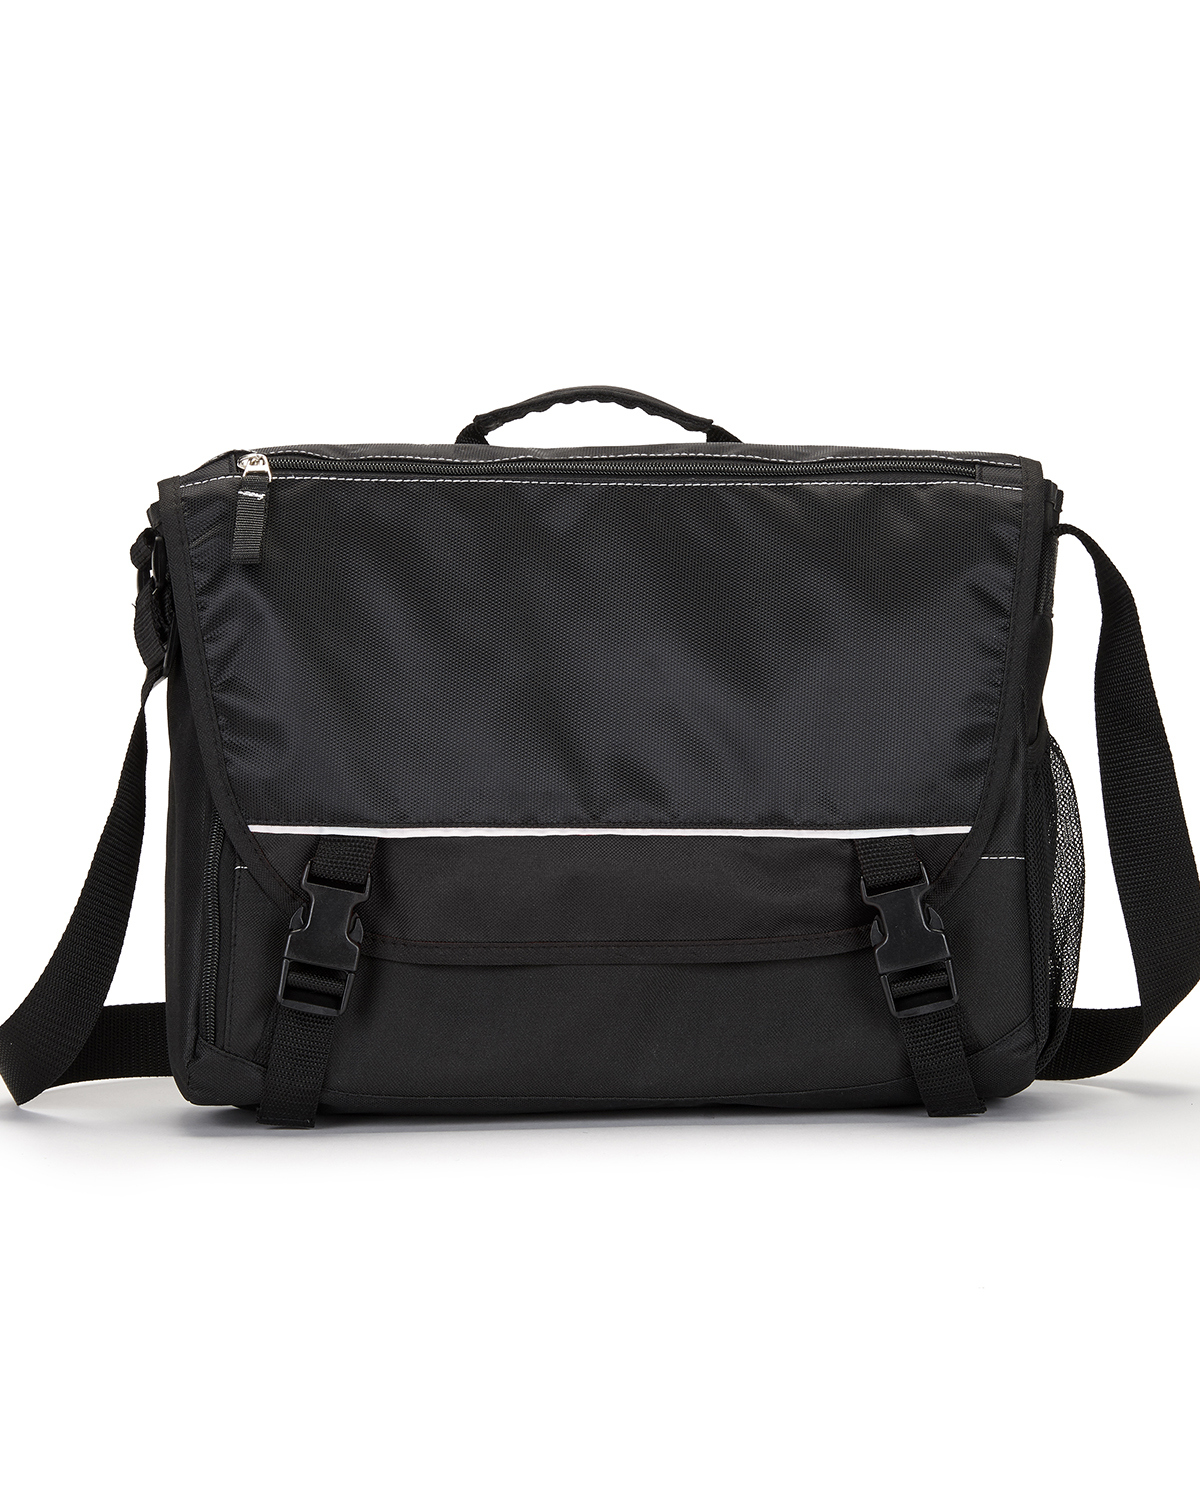 Gemline G2652 - Pursuit Computer Messenger Bag